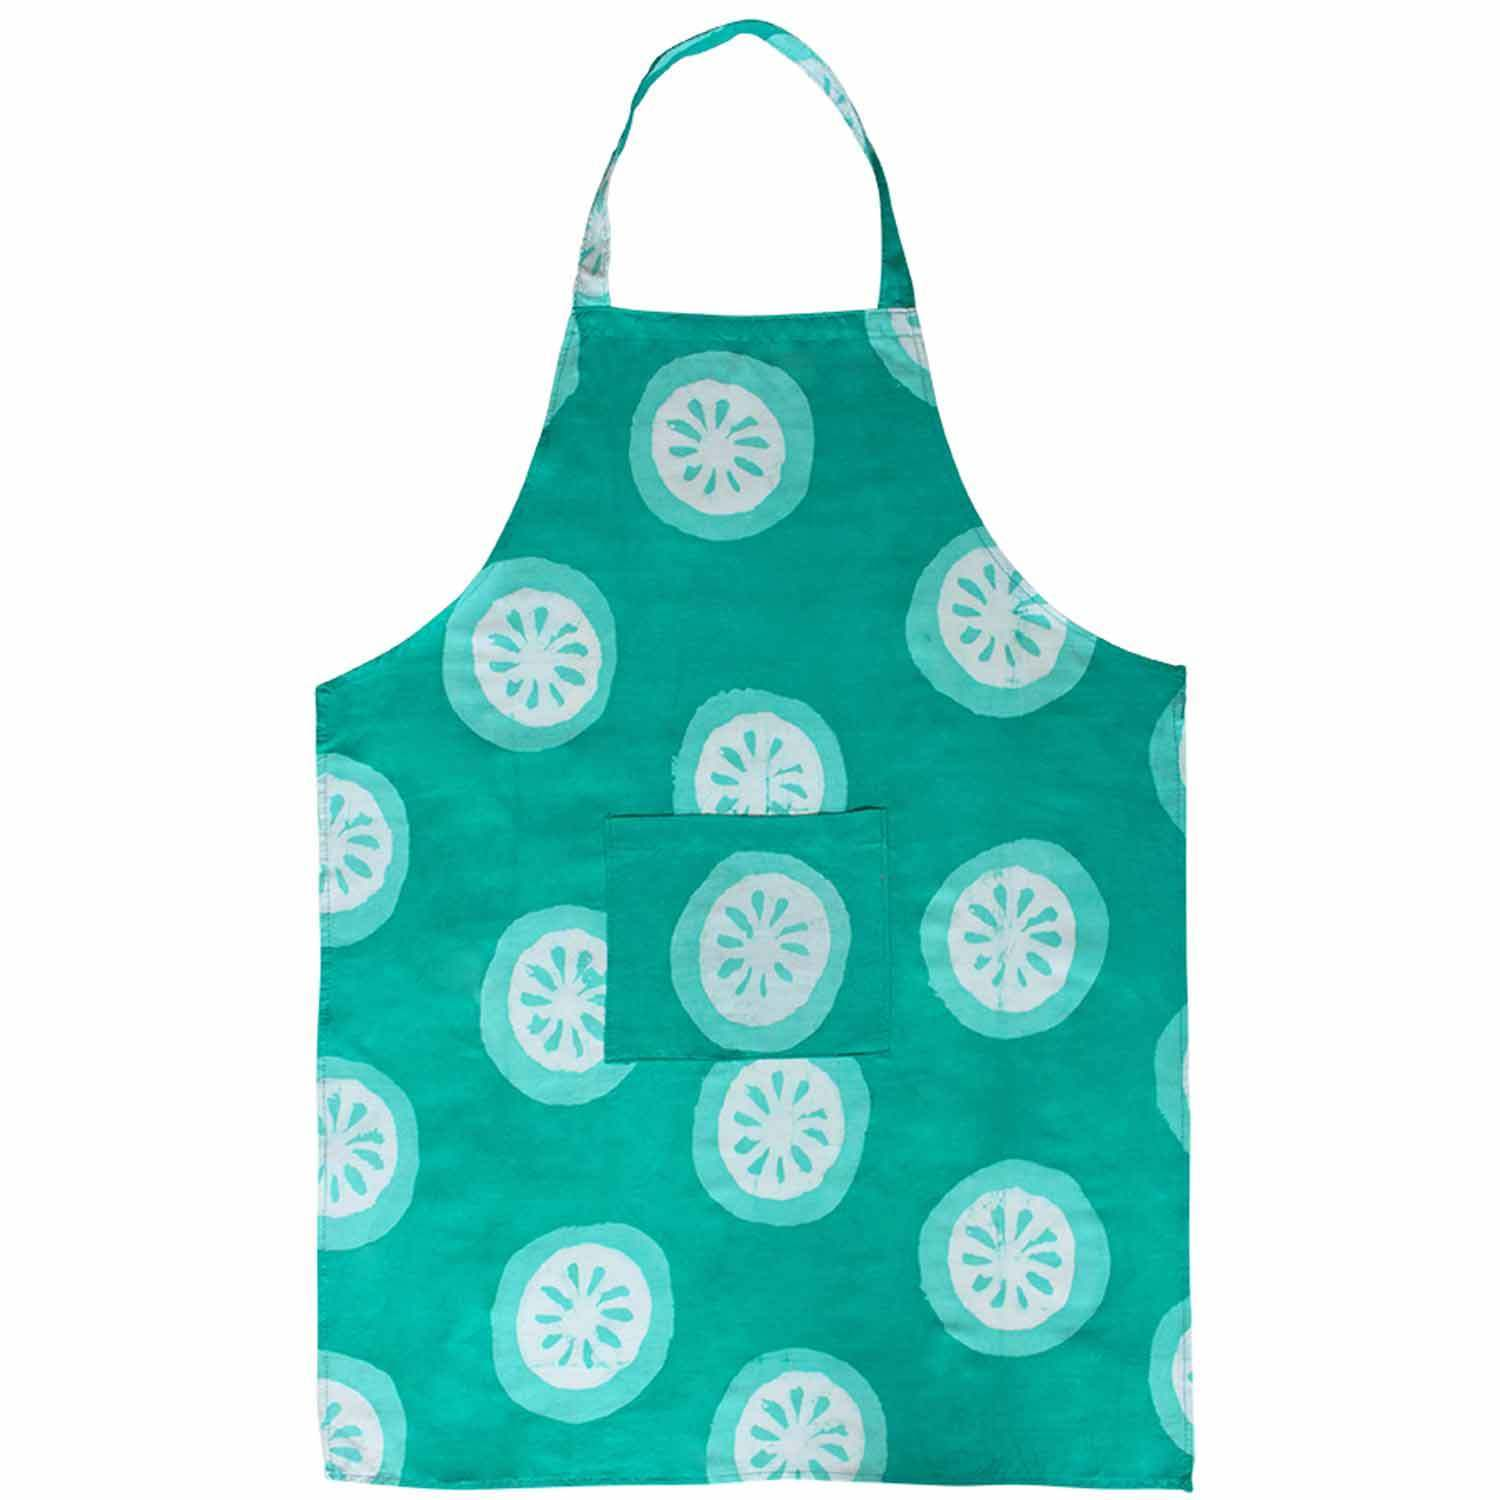 Global Crafts Global Mamas Handmade Cotton Apron - Shamro...